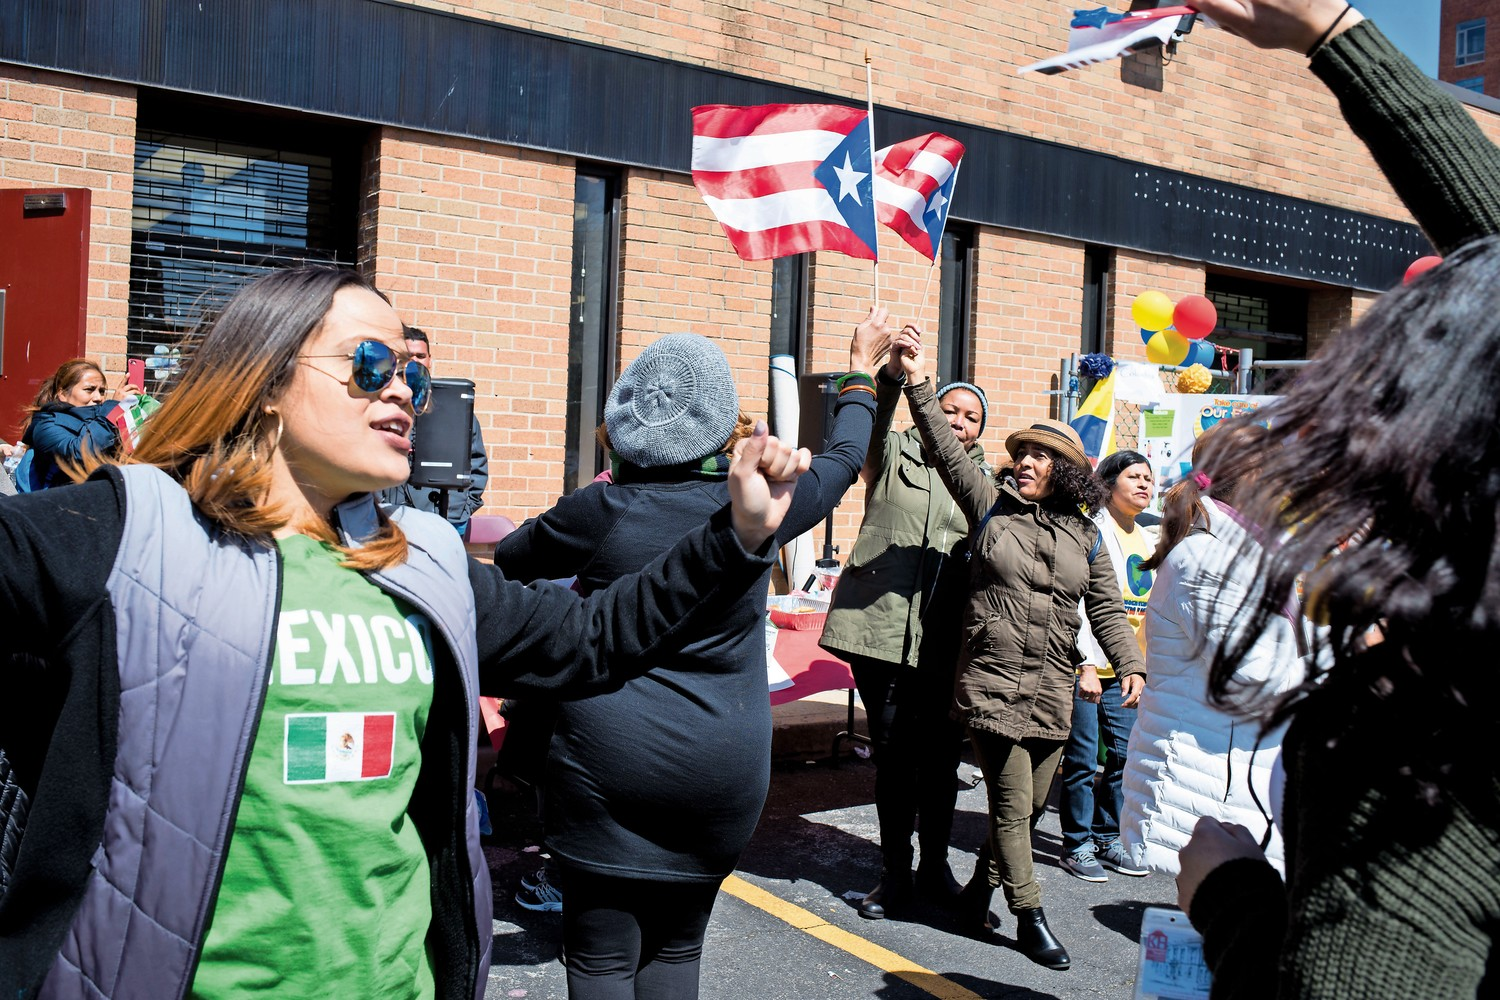 People wave Puerto Rican flags and dance at an Earth Day celebration at the Kingsbridge Heights Community Center's location on West 231st Street.